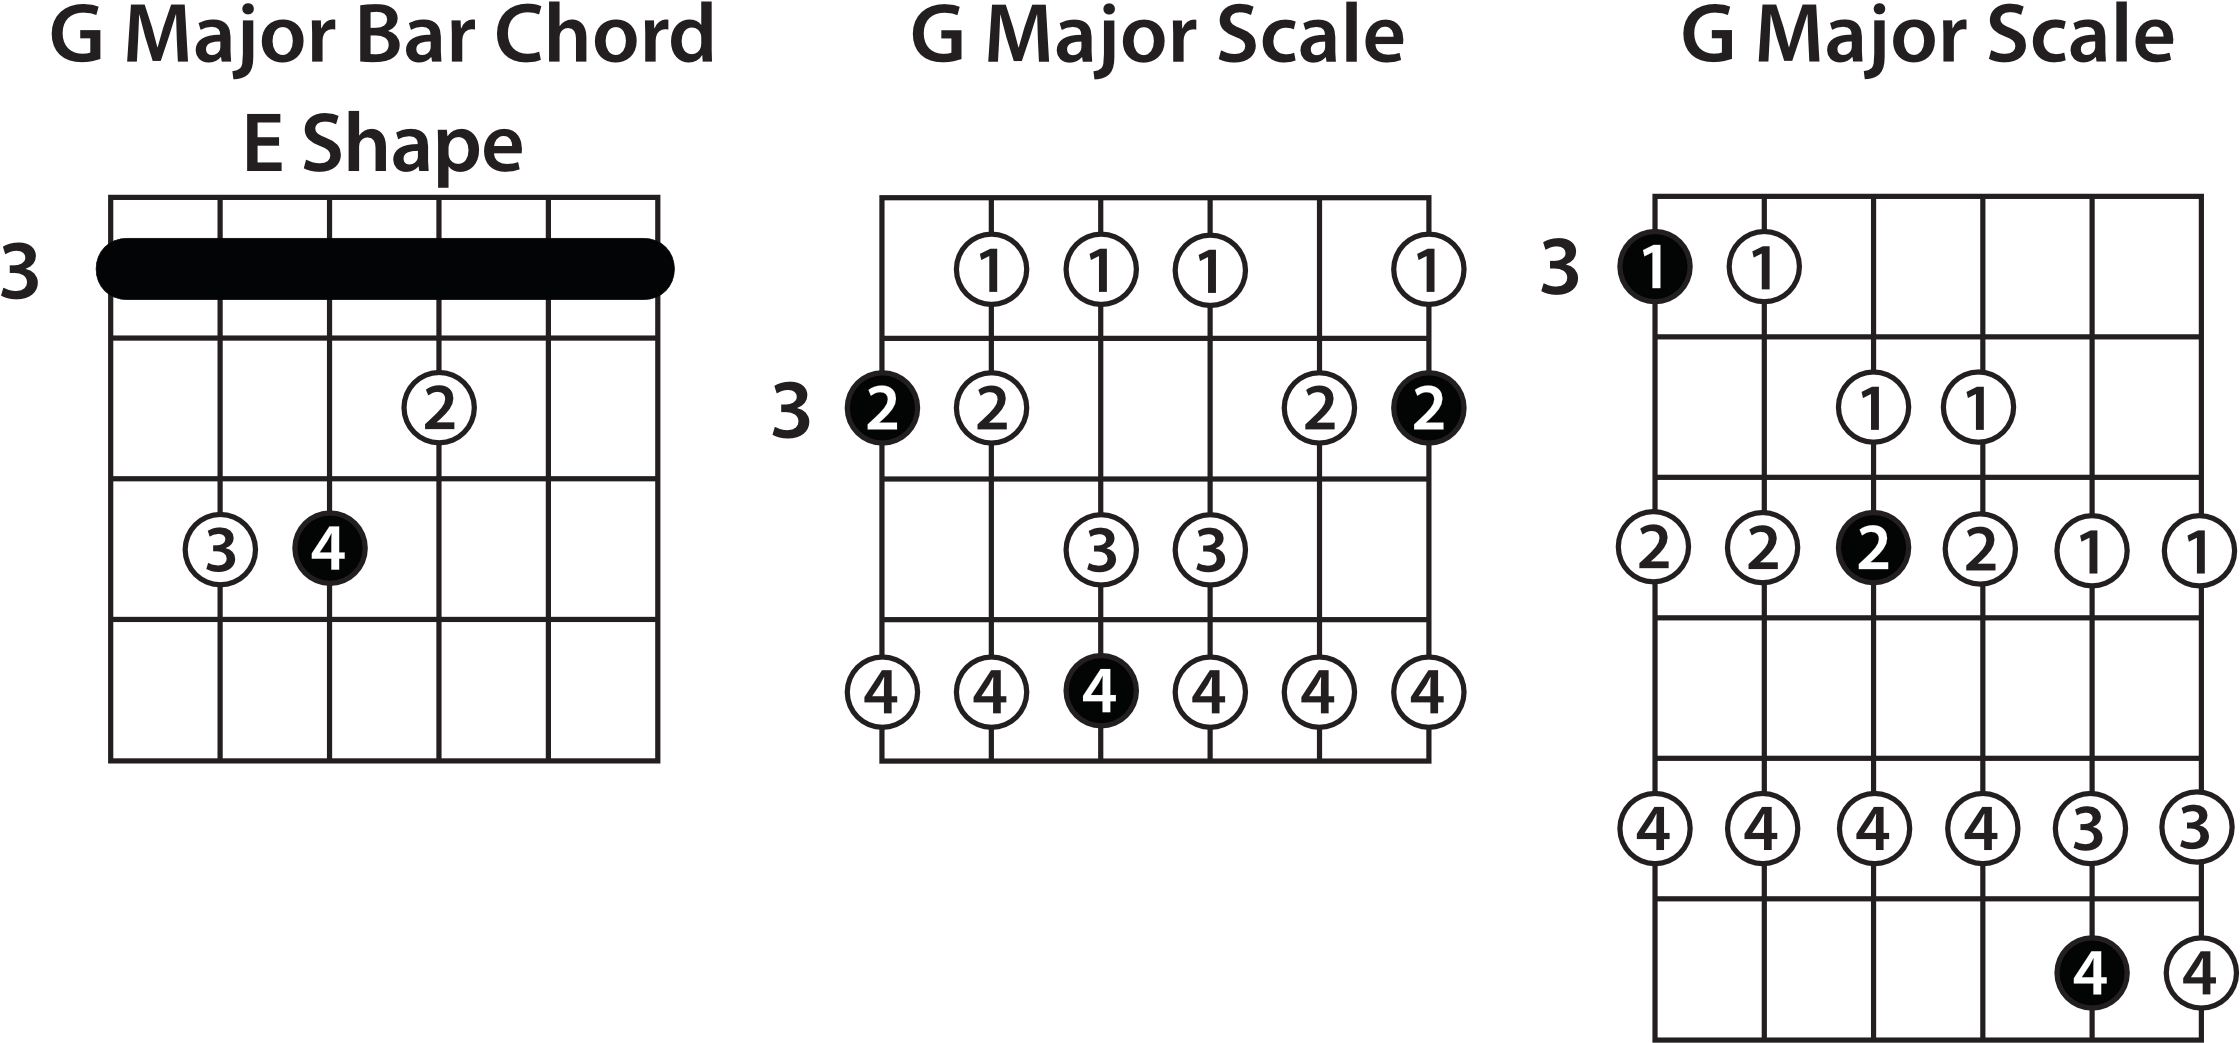 Download D Bar Chord Shape   Diagram PNG Image with No Background ...